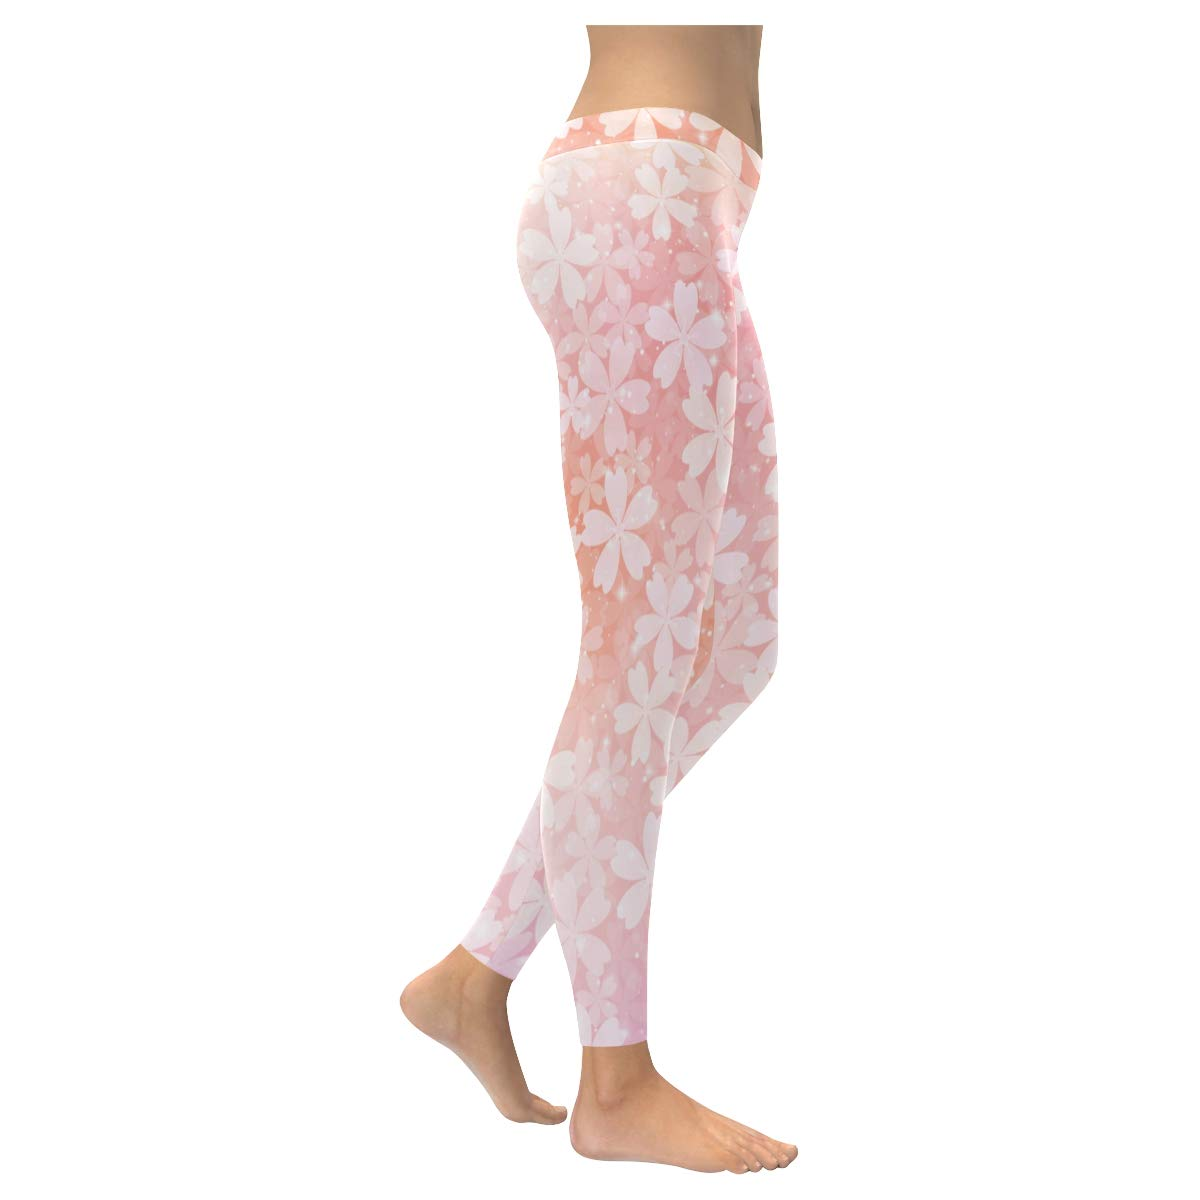 YPink Low Waist Comprrssion Leggings for Women Active Leggings Capri for Women Glitter